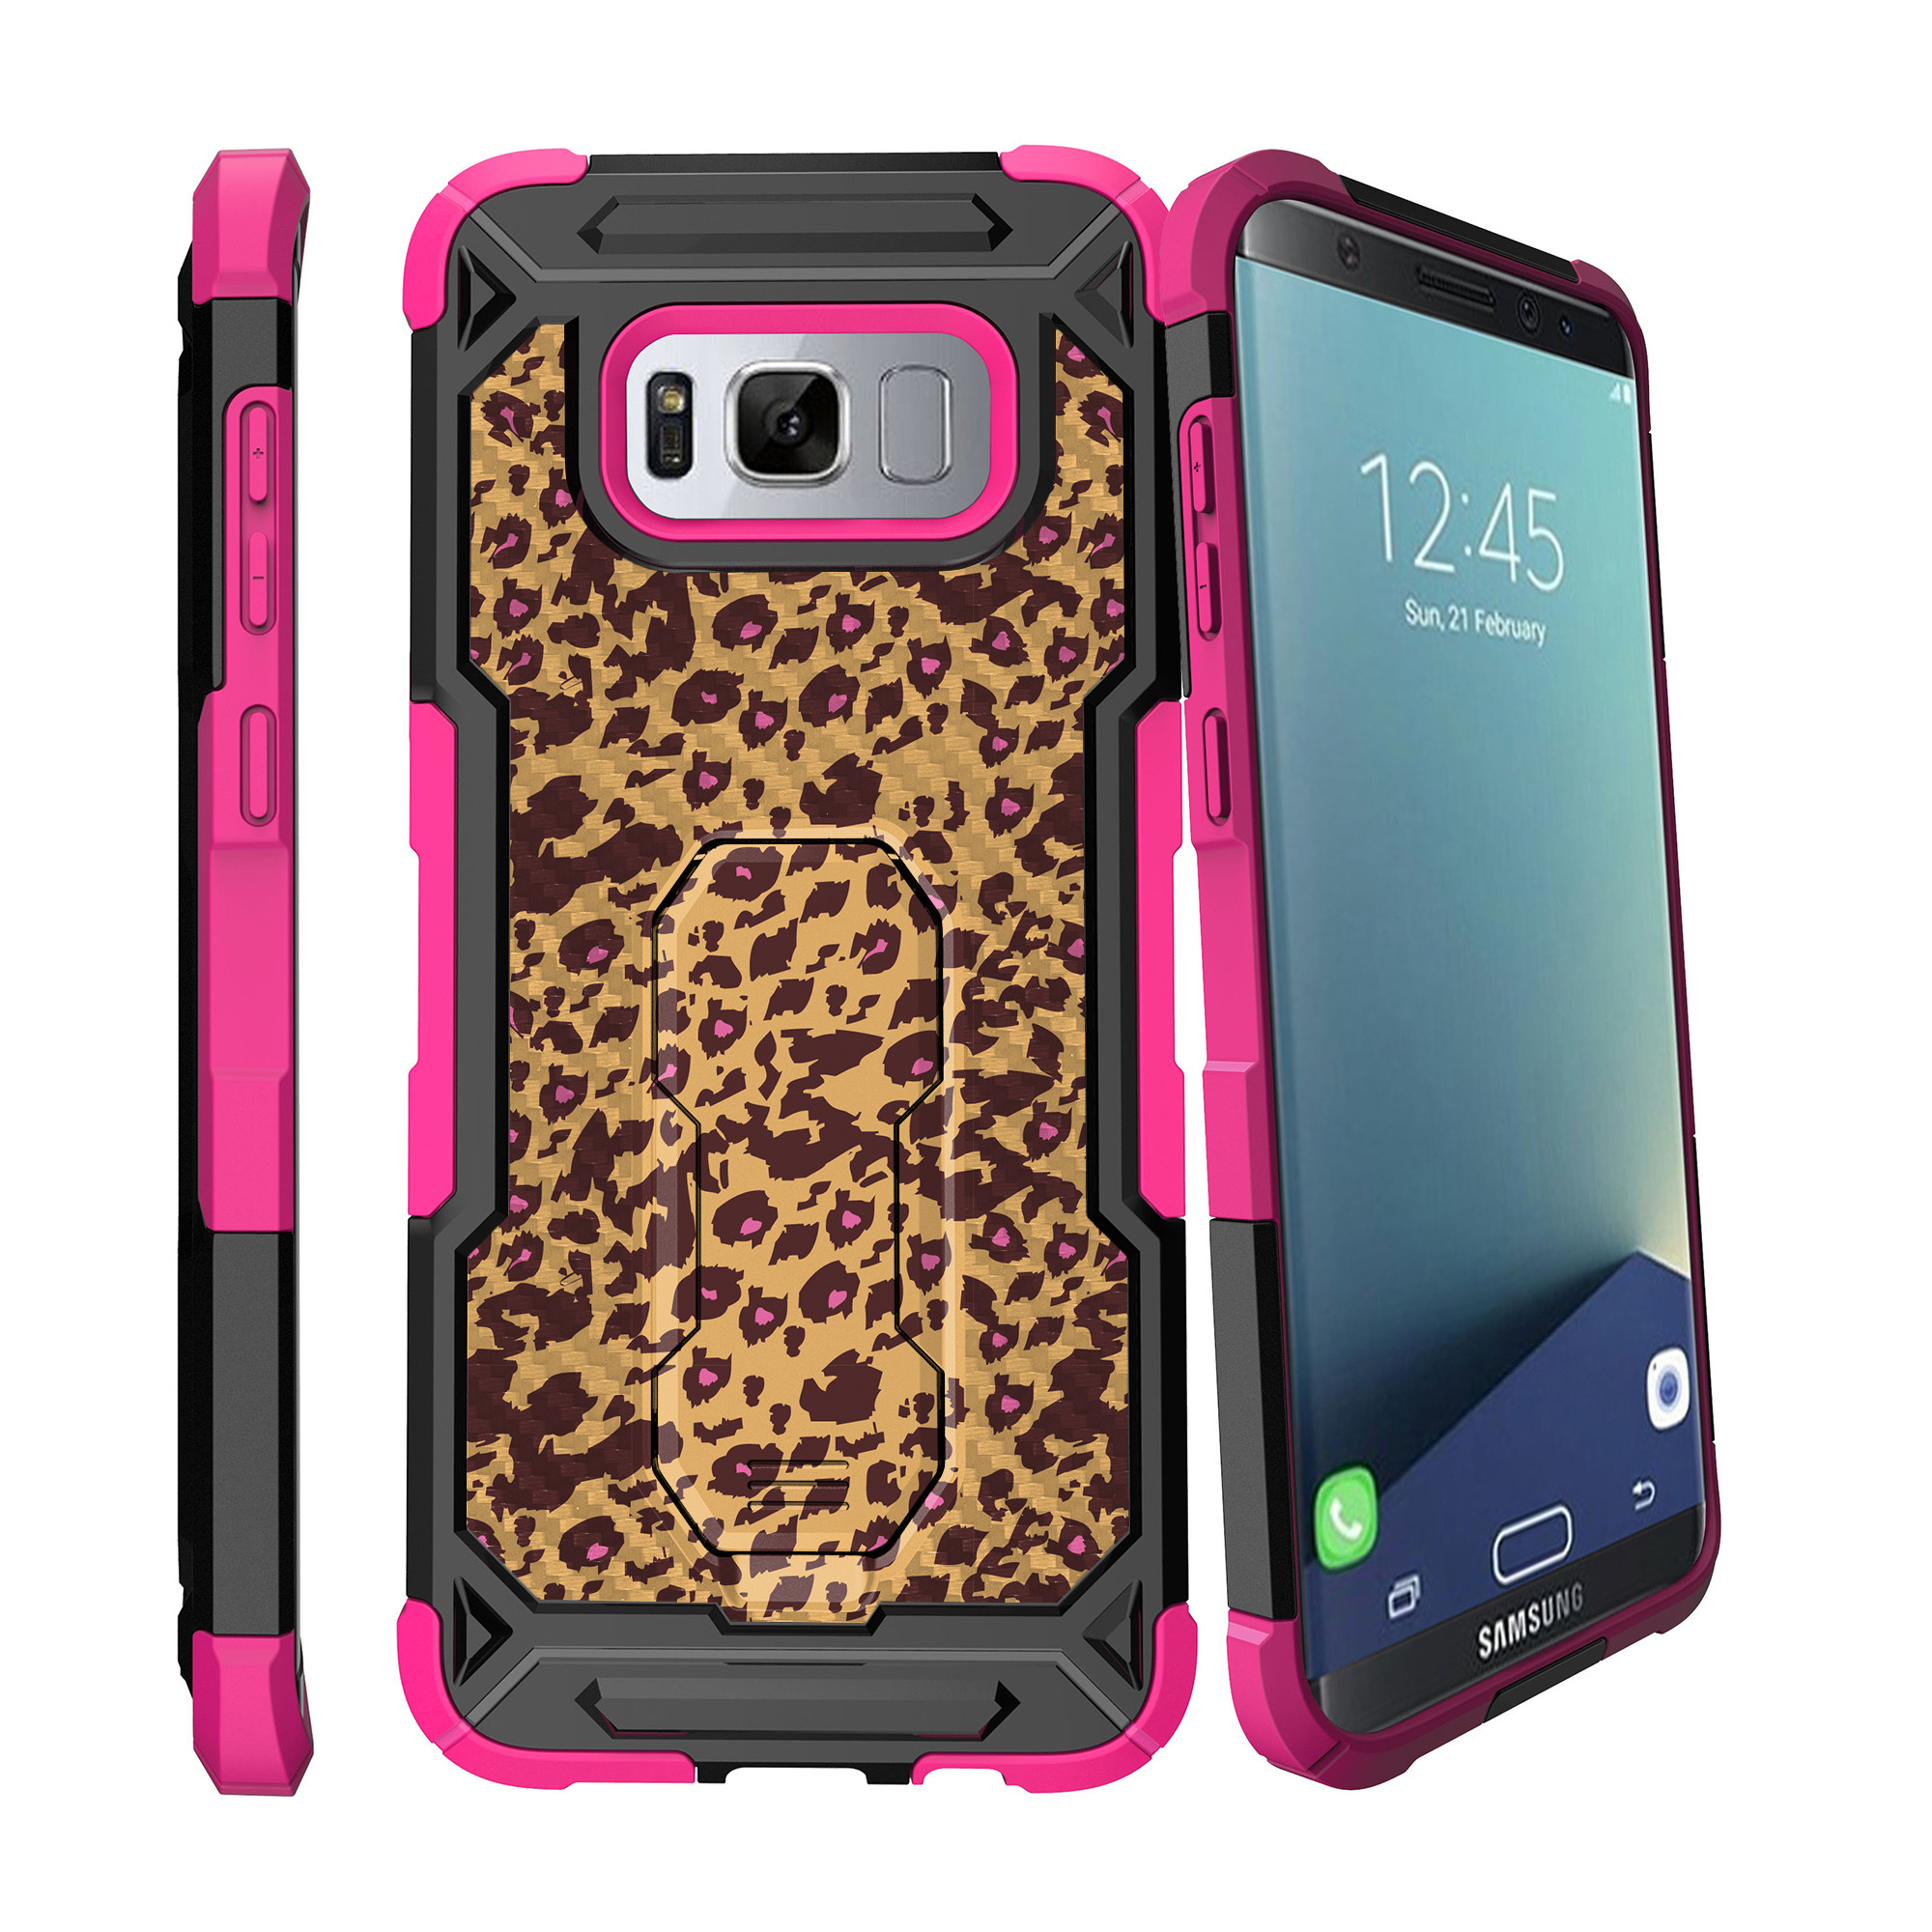 Case for Samsung Galaxy S8 Plus Version [ UFO Defense Case ][Galaxy S8 PLUS SM-G955][Pink Silicone] Carbon Fiber Texture Case with Holster + Stand Fun Patterns